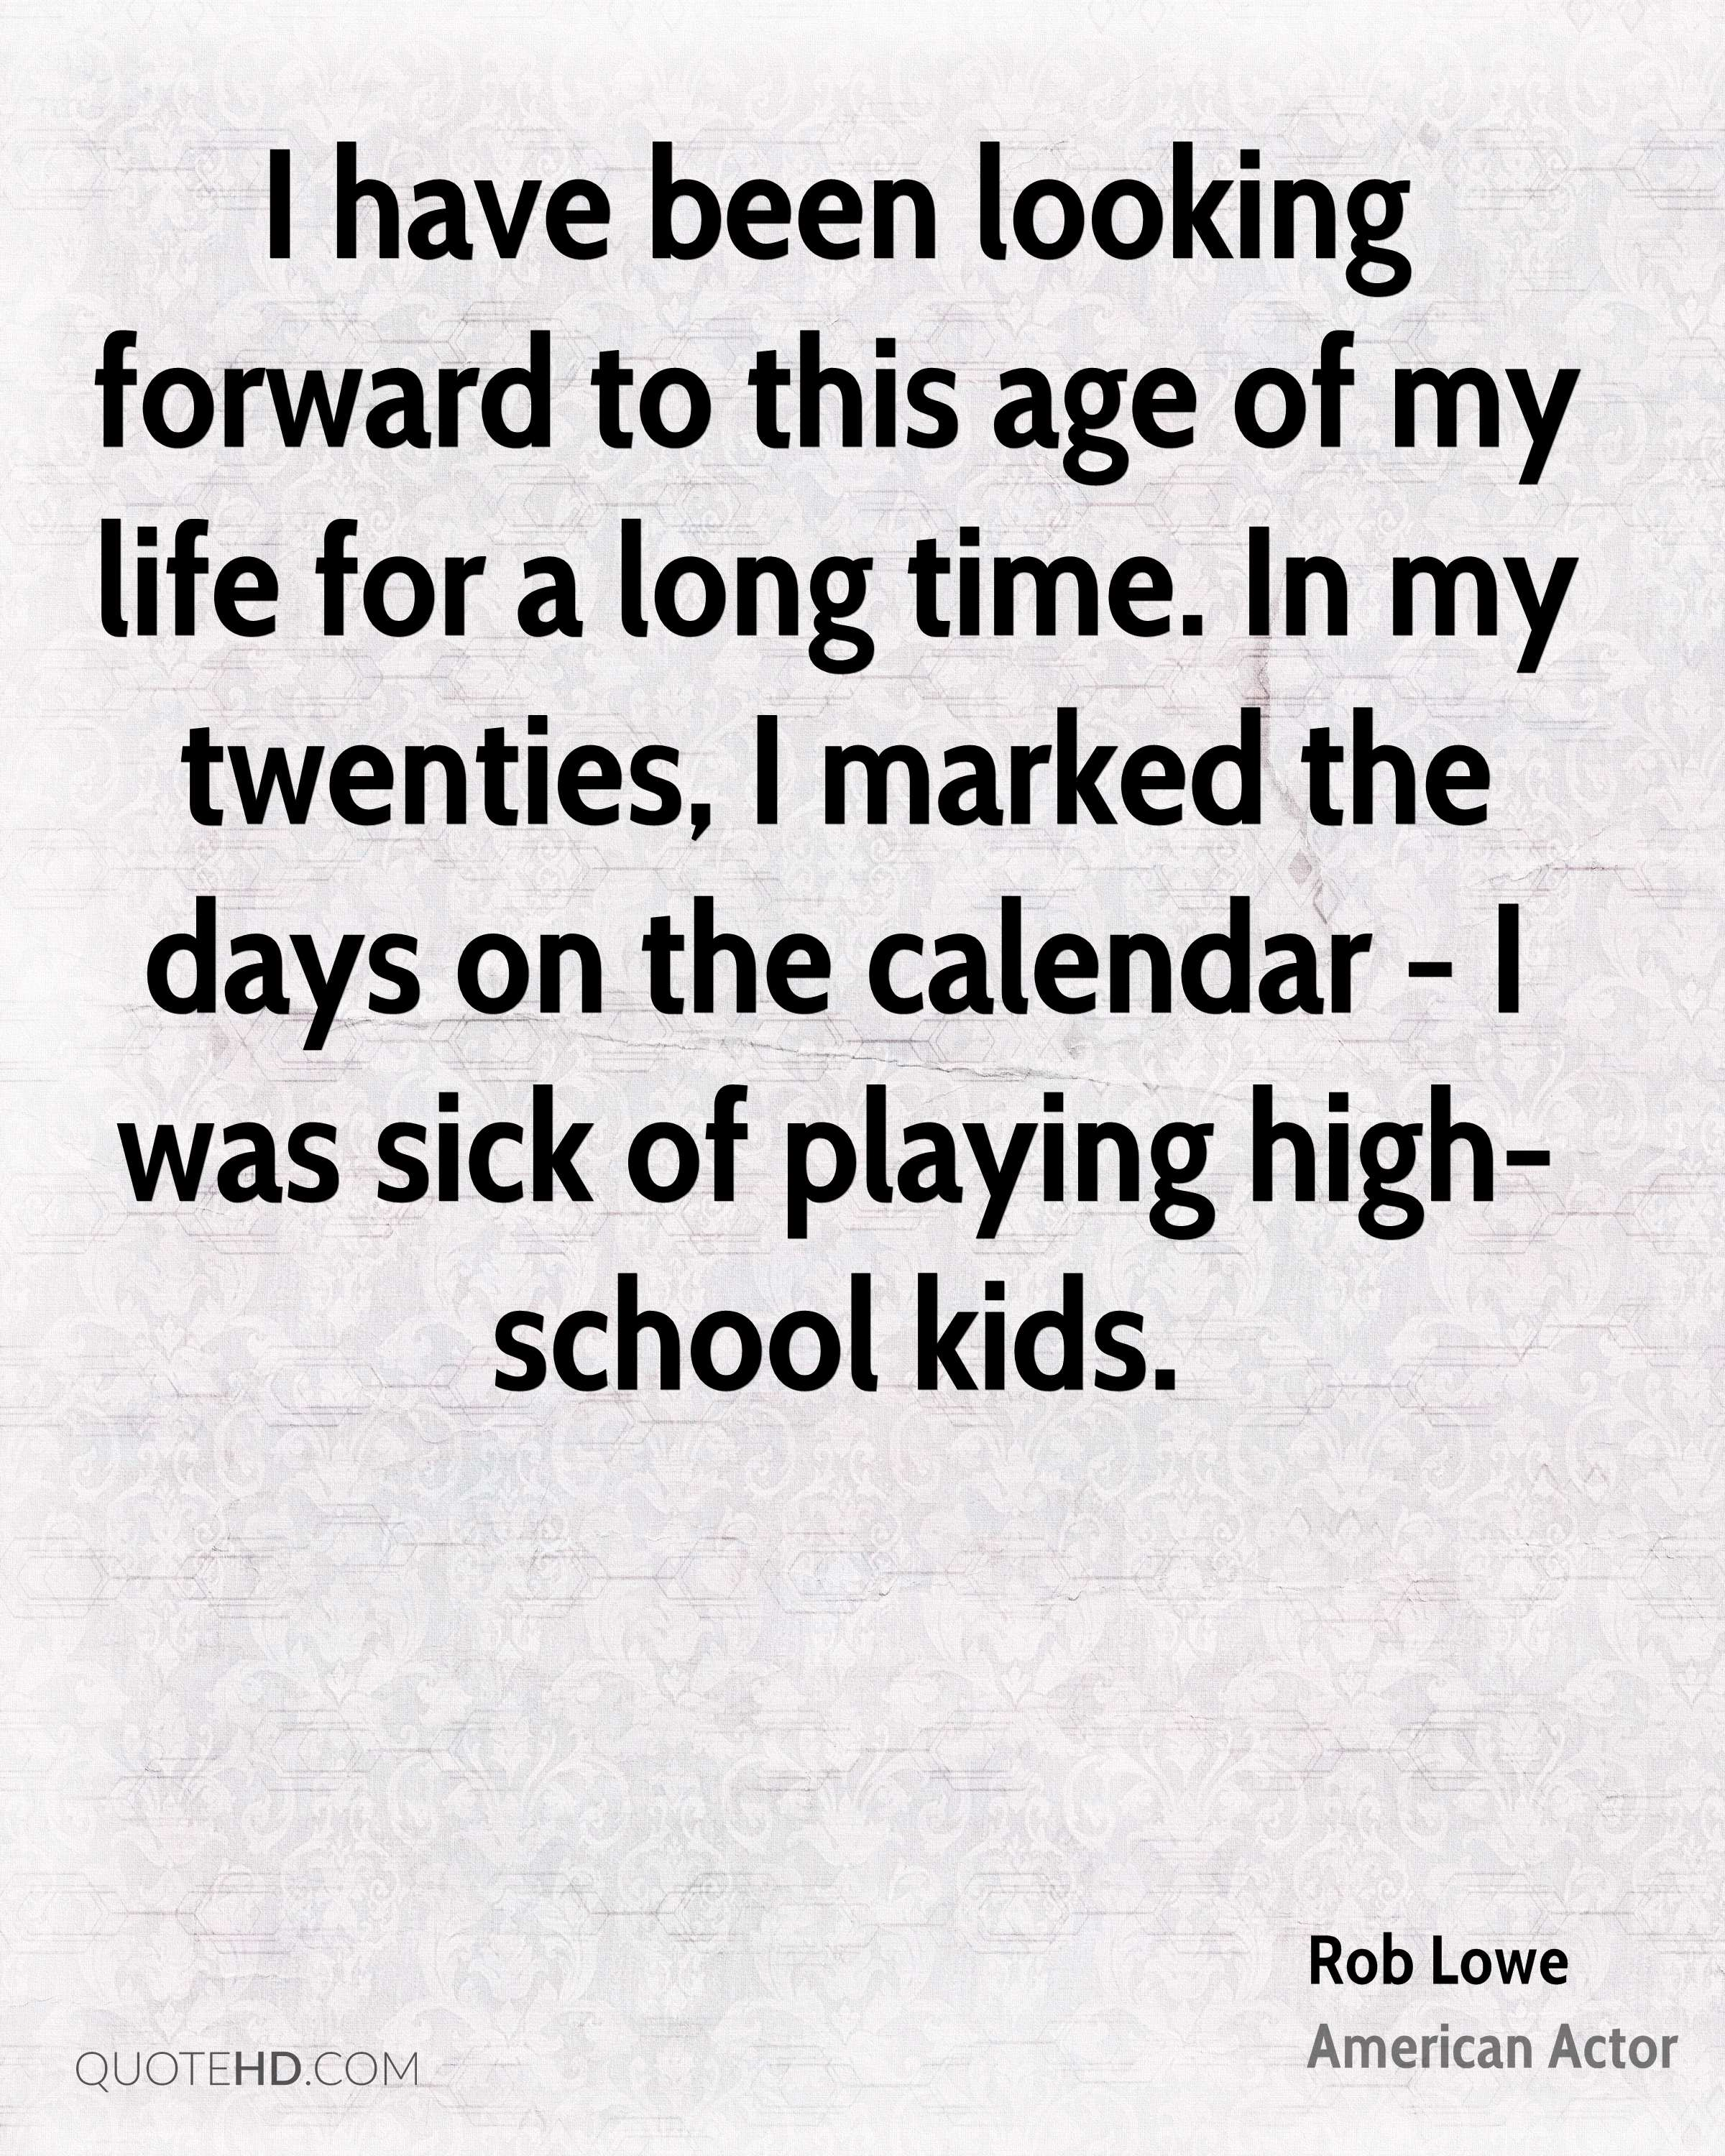 I have been looking forward to this age of my life for a long time. In my twenties, I marked the days on the calendar - I was sick of playing high-school kids.